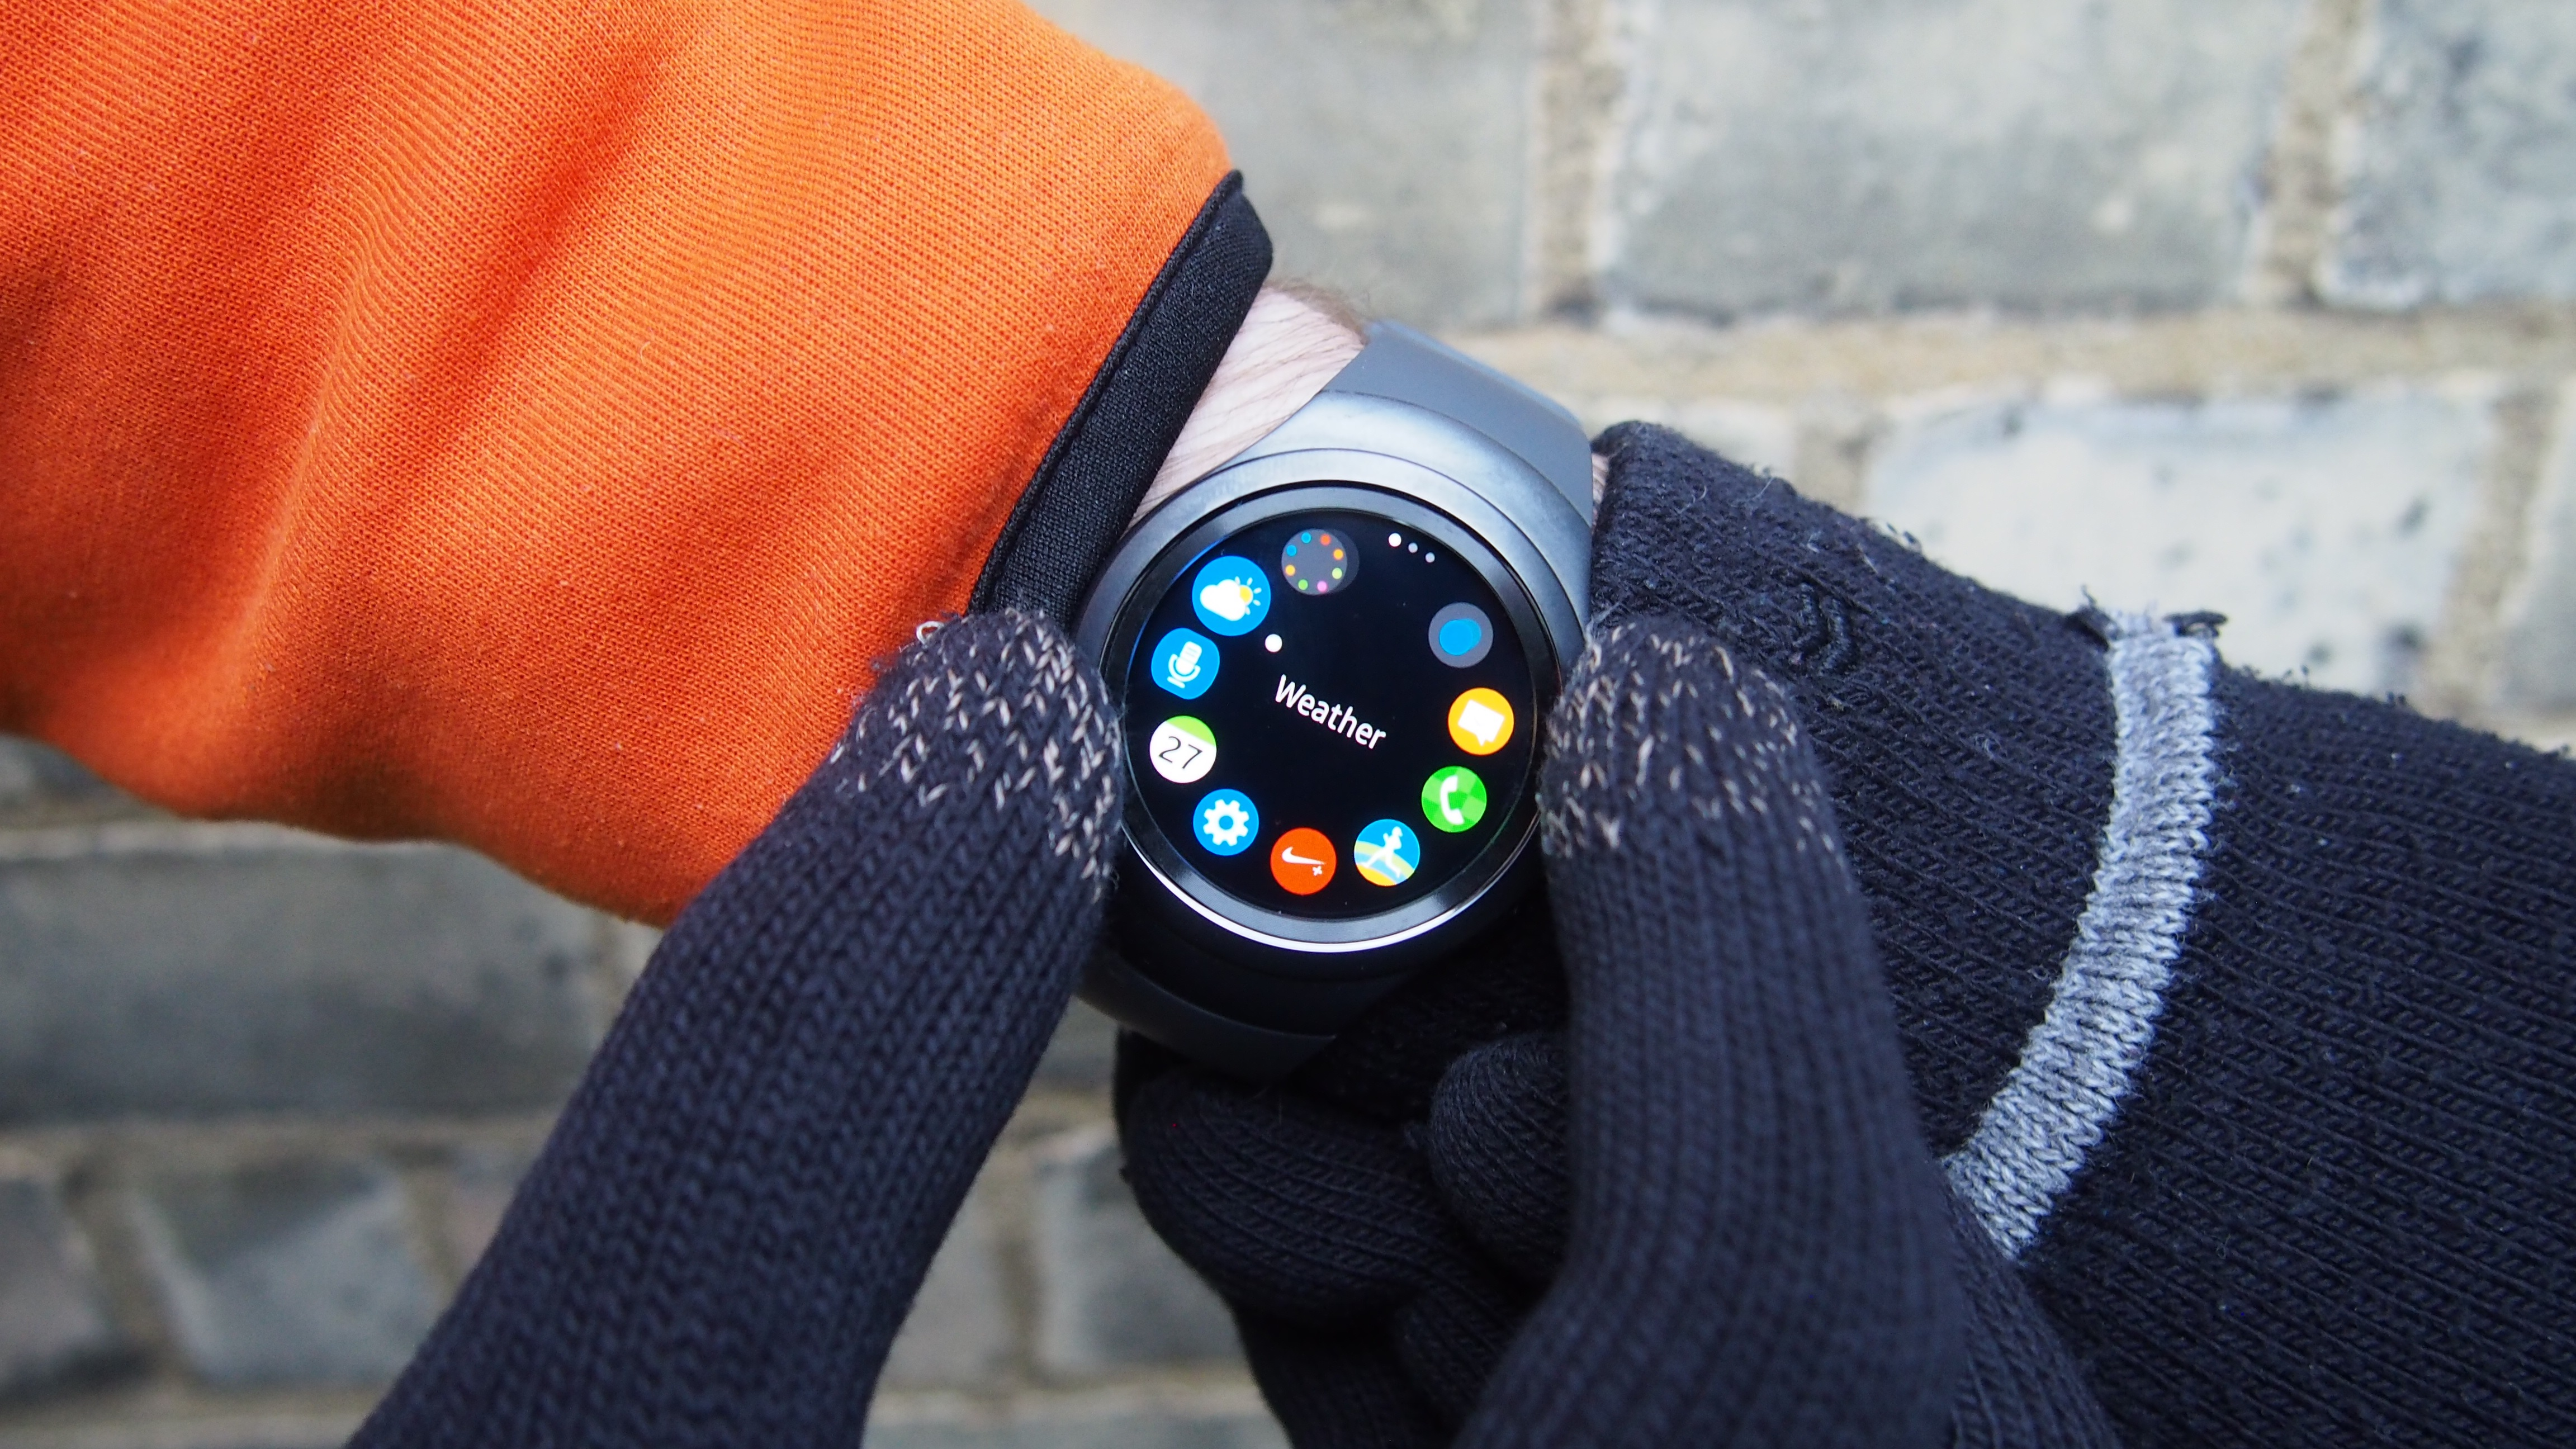 A smartwatch for all seasons it 39 s the samsung gear s2 expert reviews for Winter watches